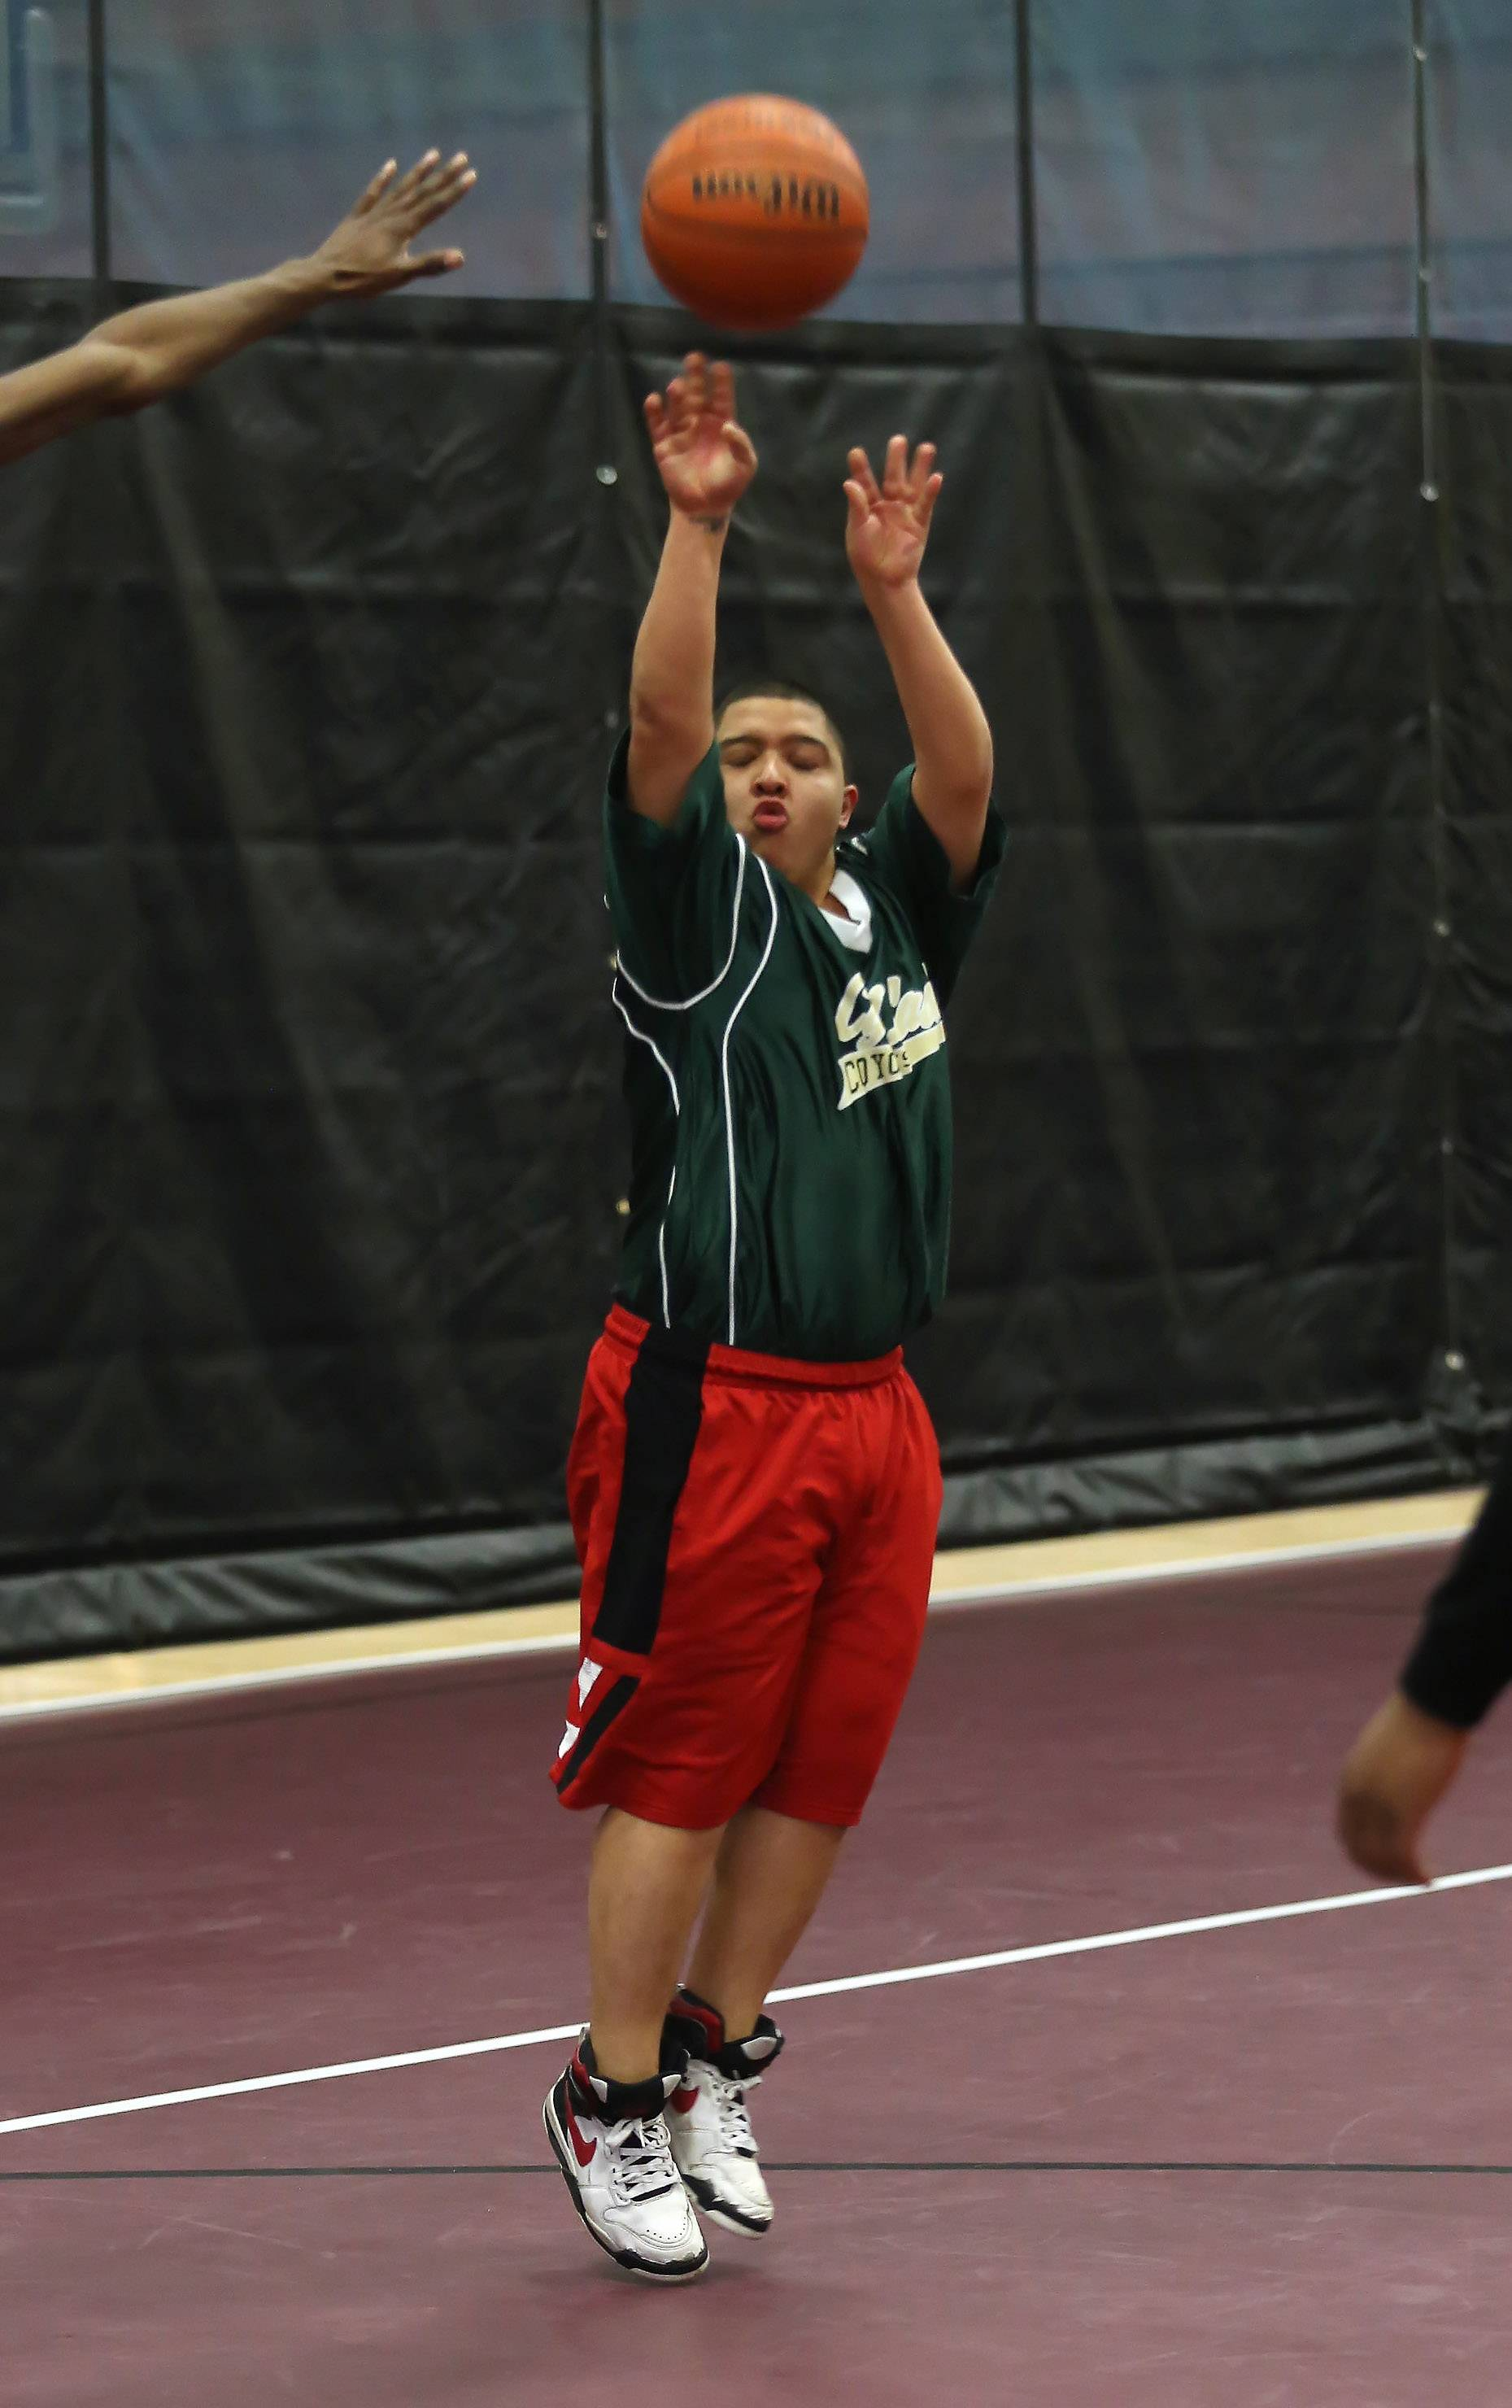 Cyd Lash School's Adrian Almazan of Gages Lake shoots from outside against Allendale School of Lake Villa during Sunday's Chicago Area Alternative Education League basketball tournament at Forest View Education Center in Arlington Heights. Almazan designed the logo on this year's T-shirts for the tournament.